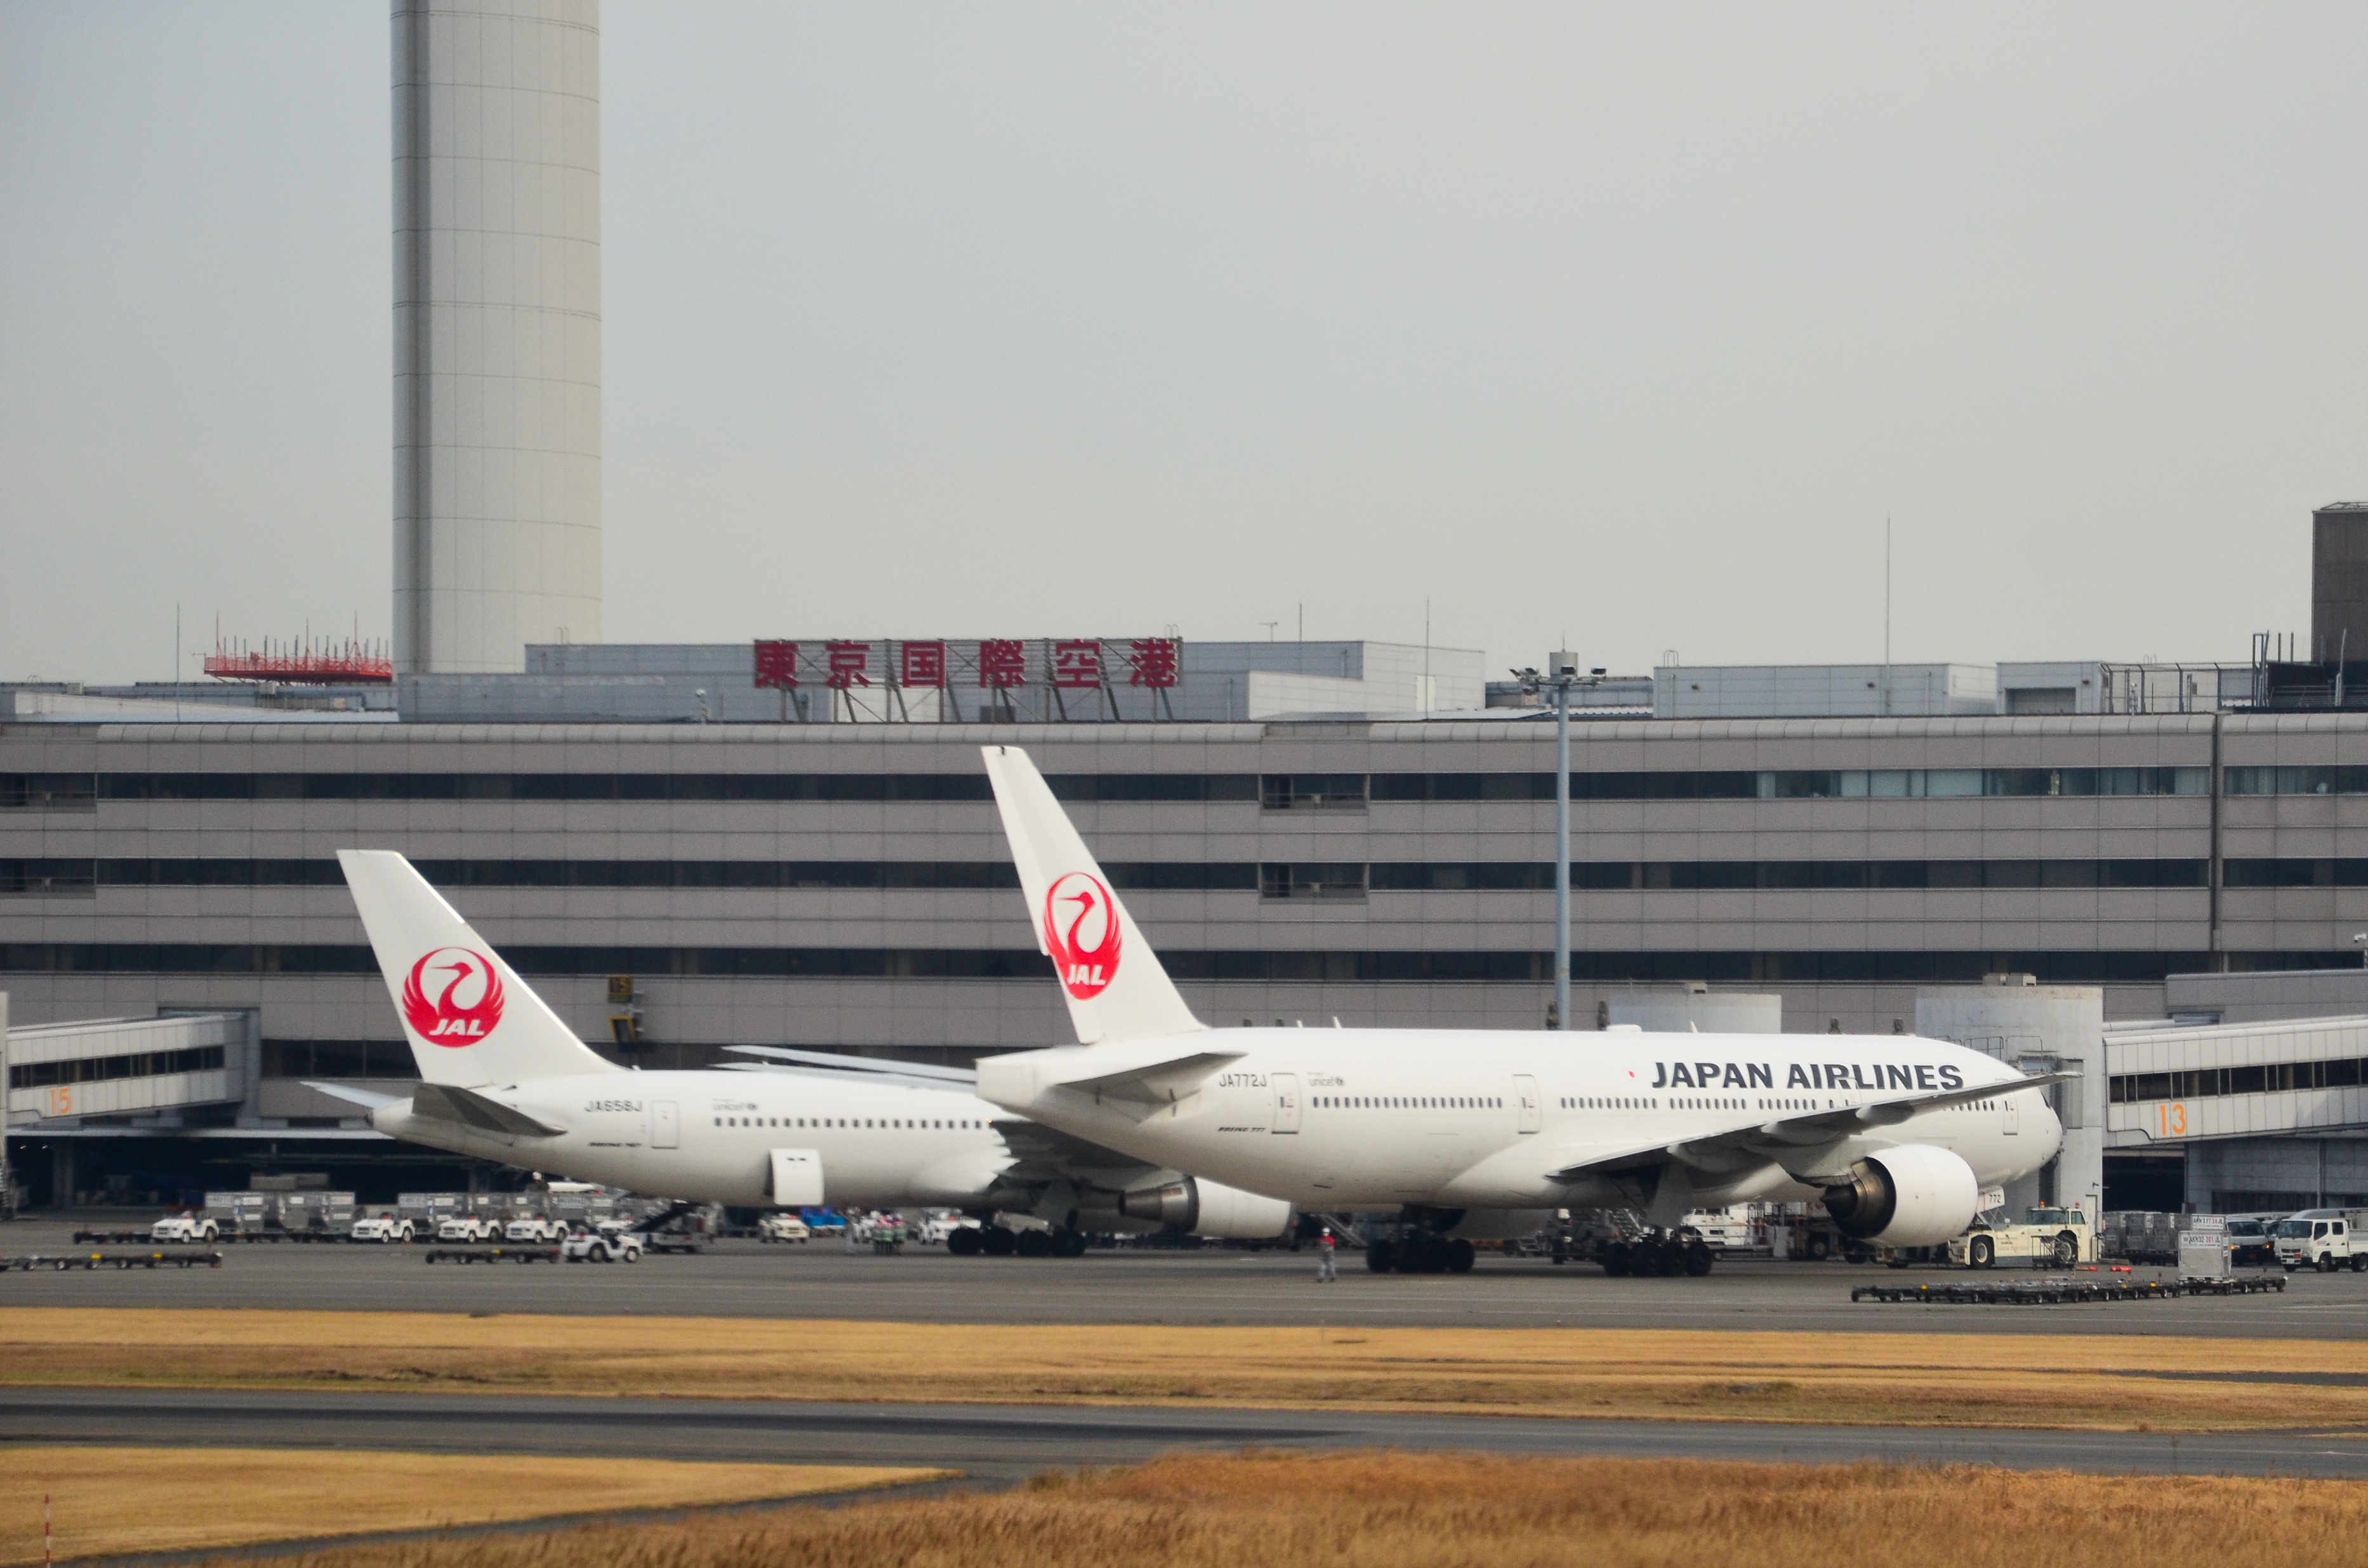 Japan Airlines uses older Boeing 777-200s in high-cycle domestic operations to compete with high speed trains.